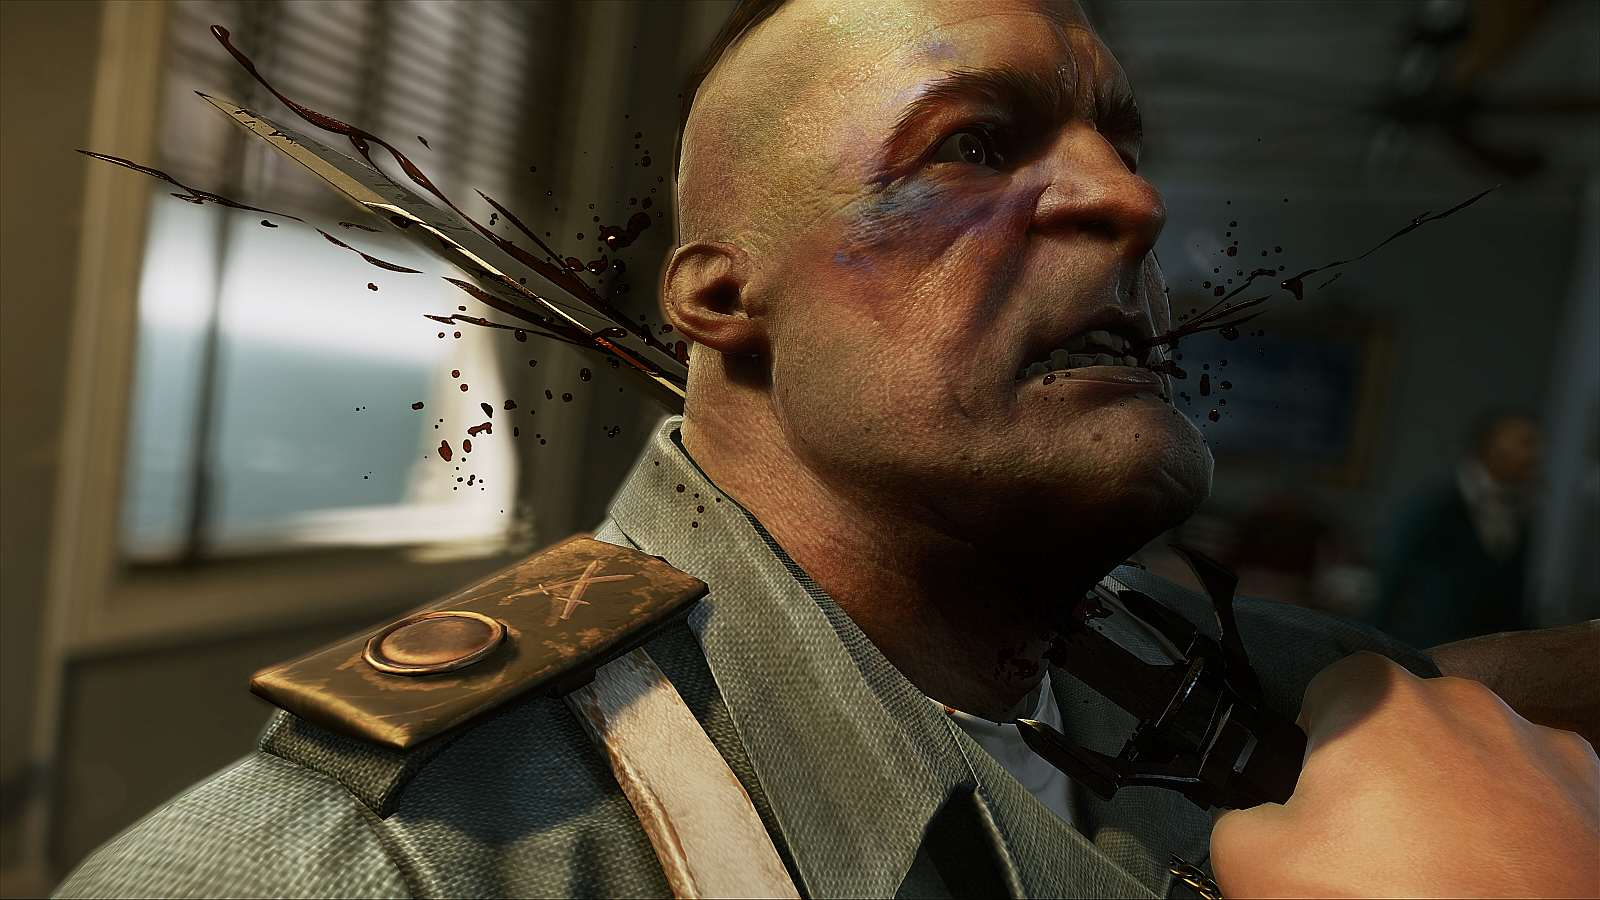 gM8XLy1 Check Out These Gorgeous New Dishonored 2 Screens